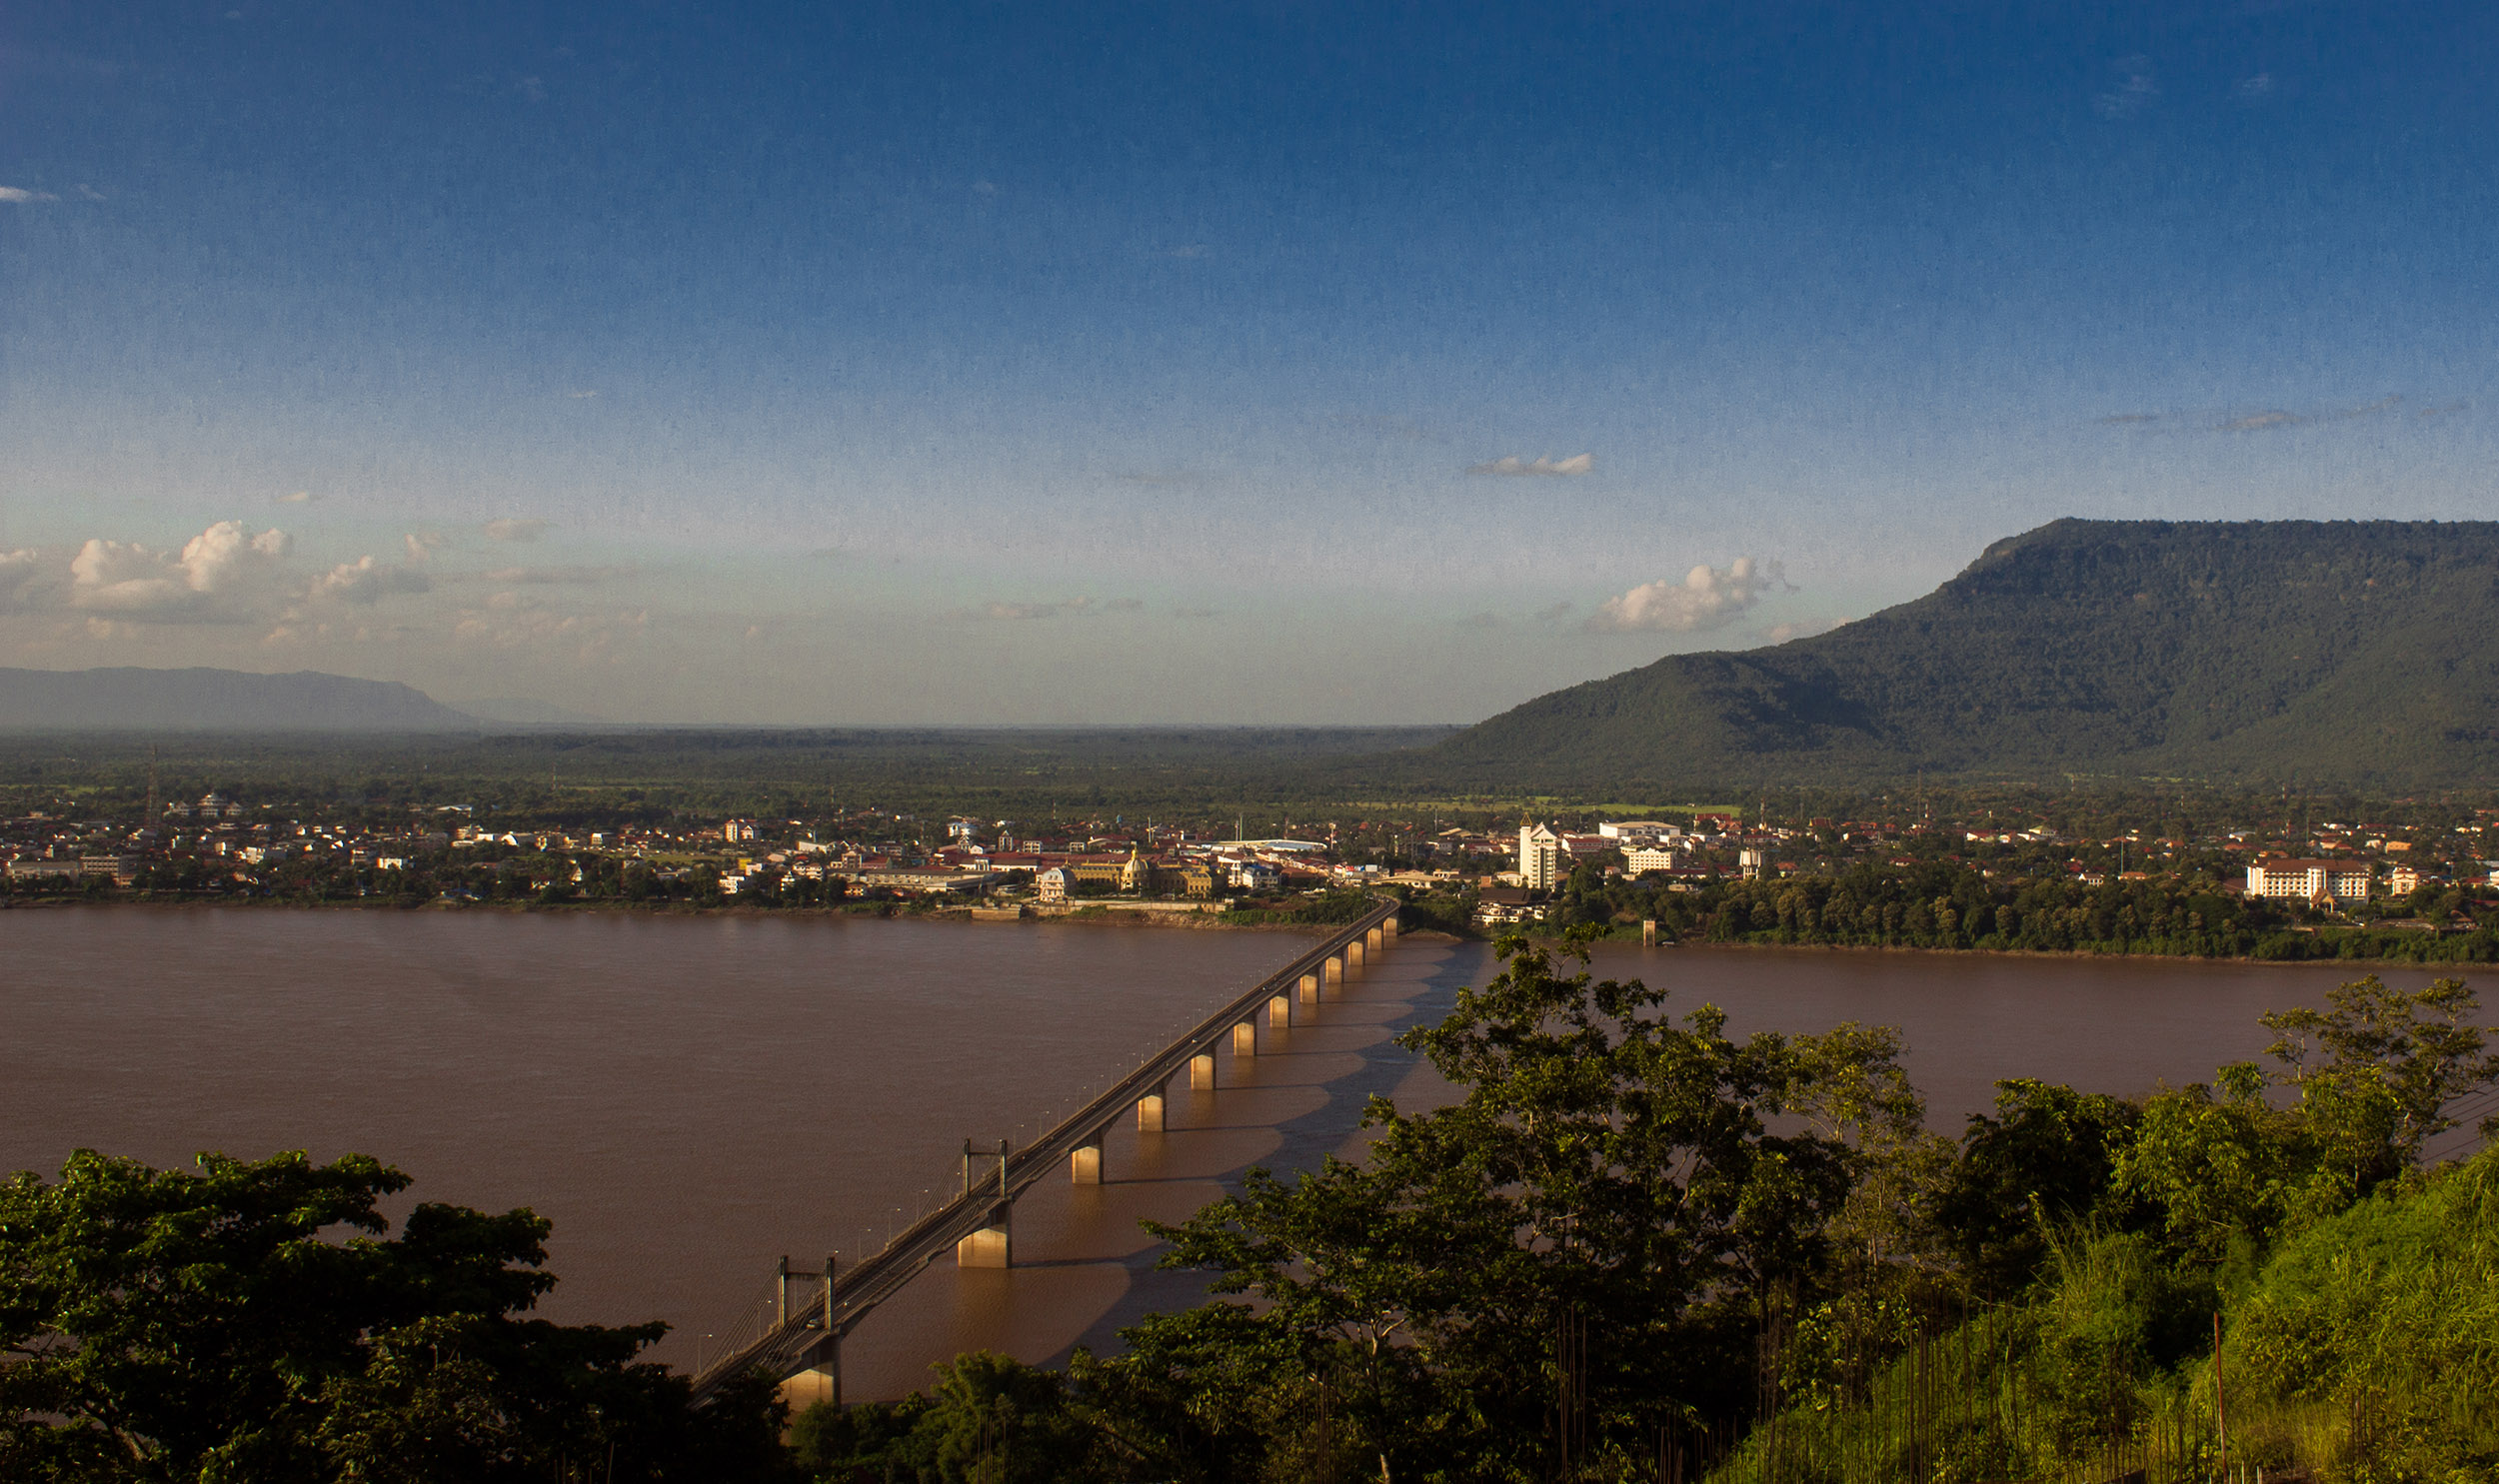 Dusk shot of a long bridge over the river to a lighted town with a mountain in the background, Laos